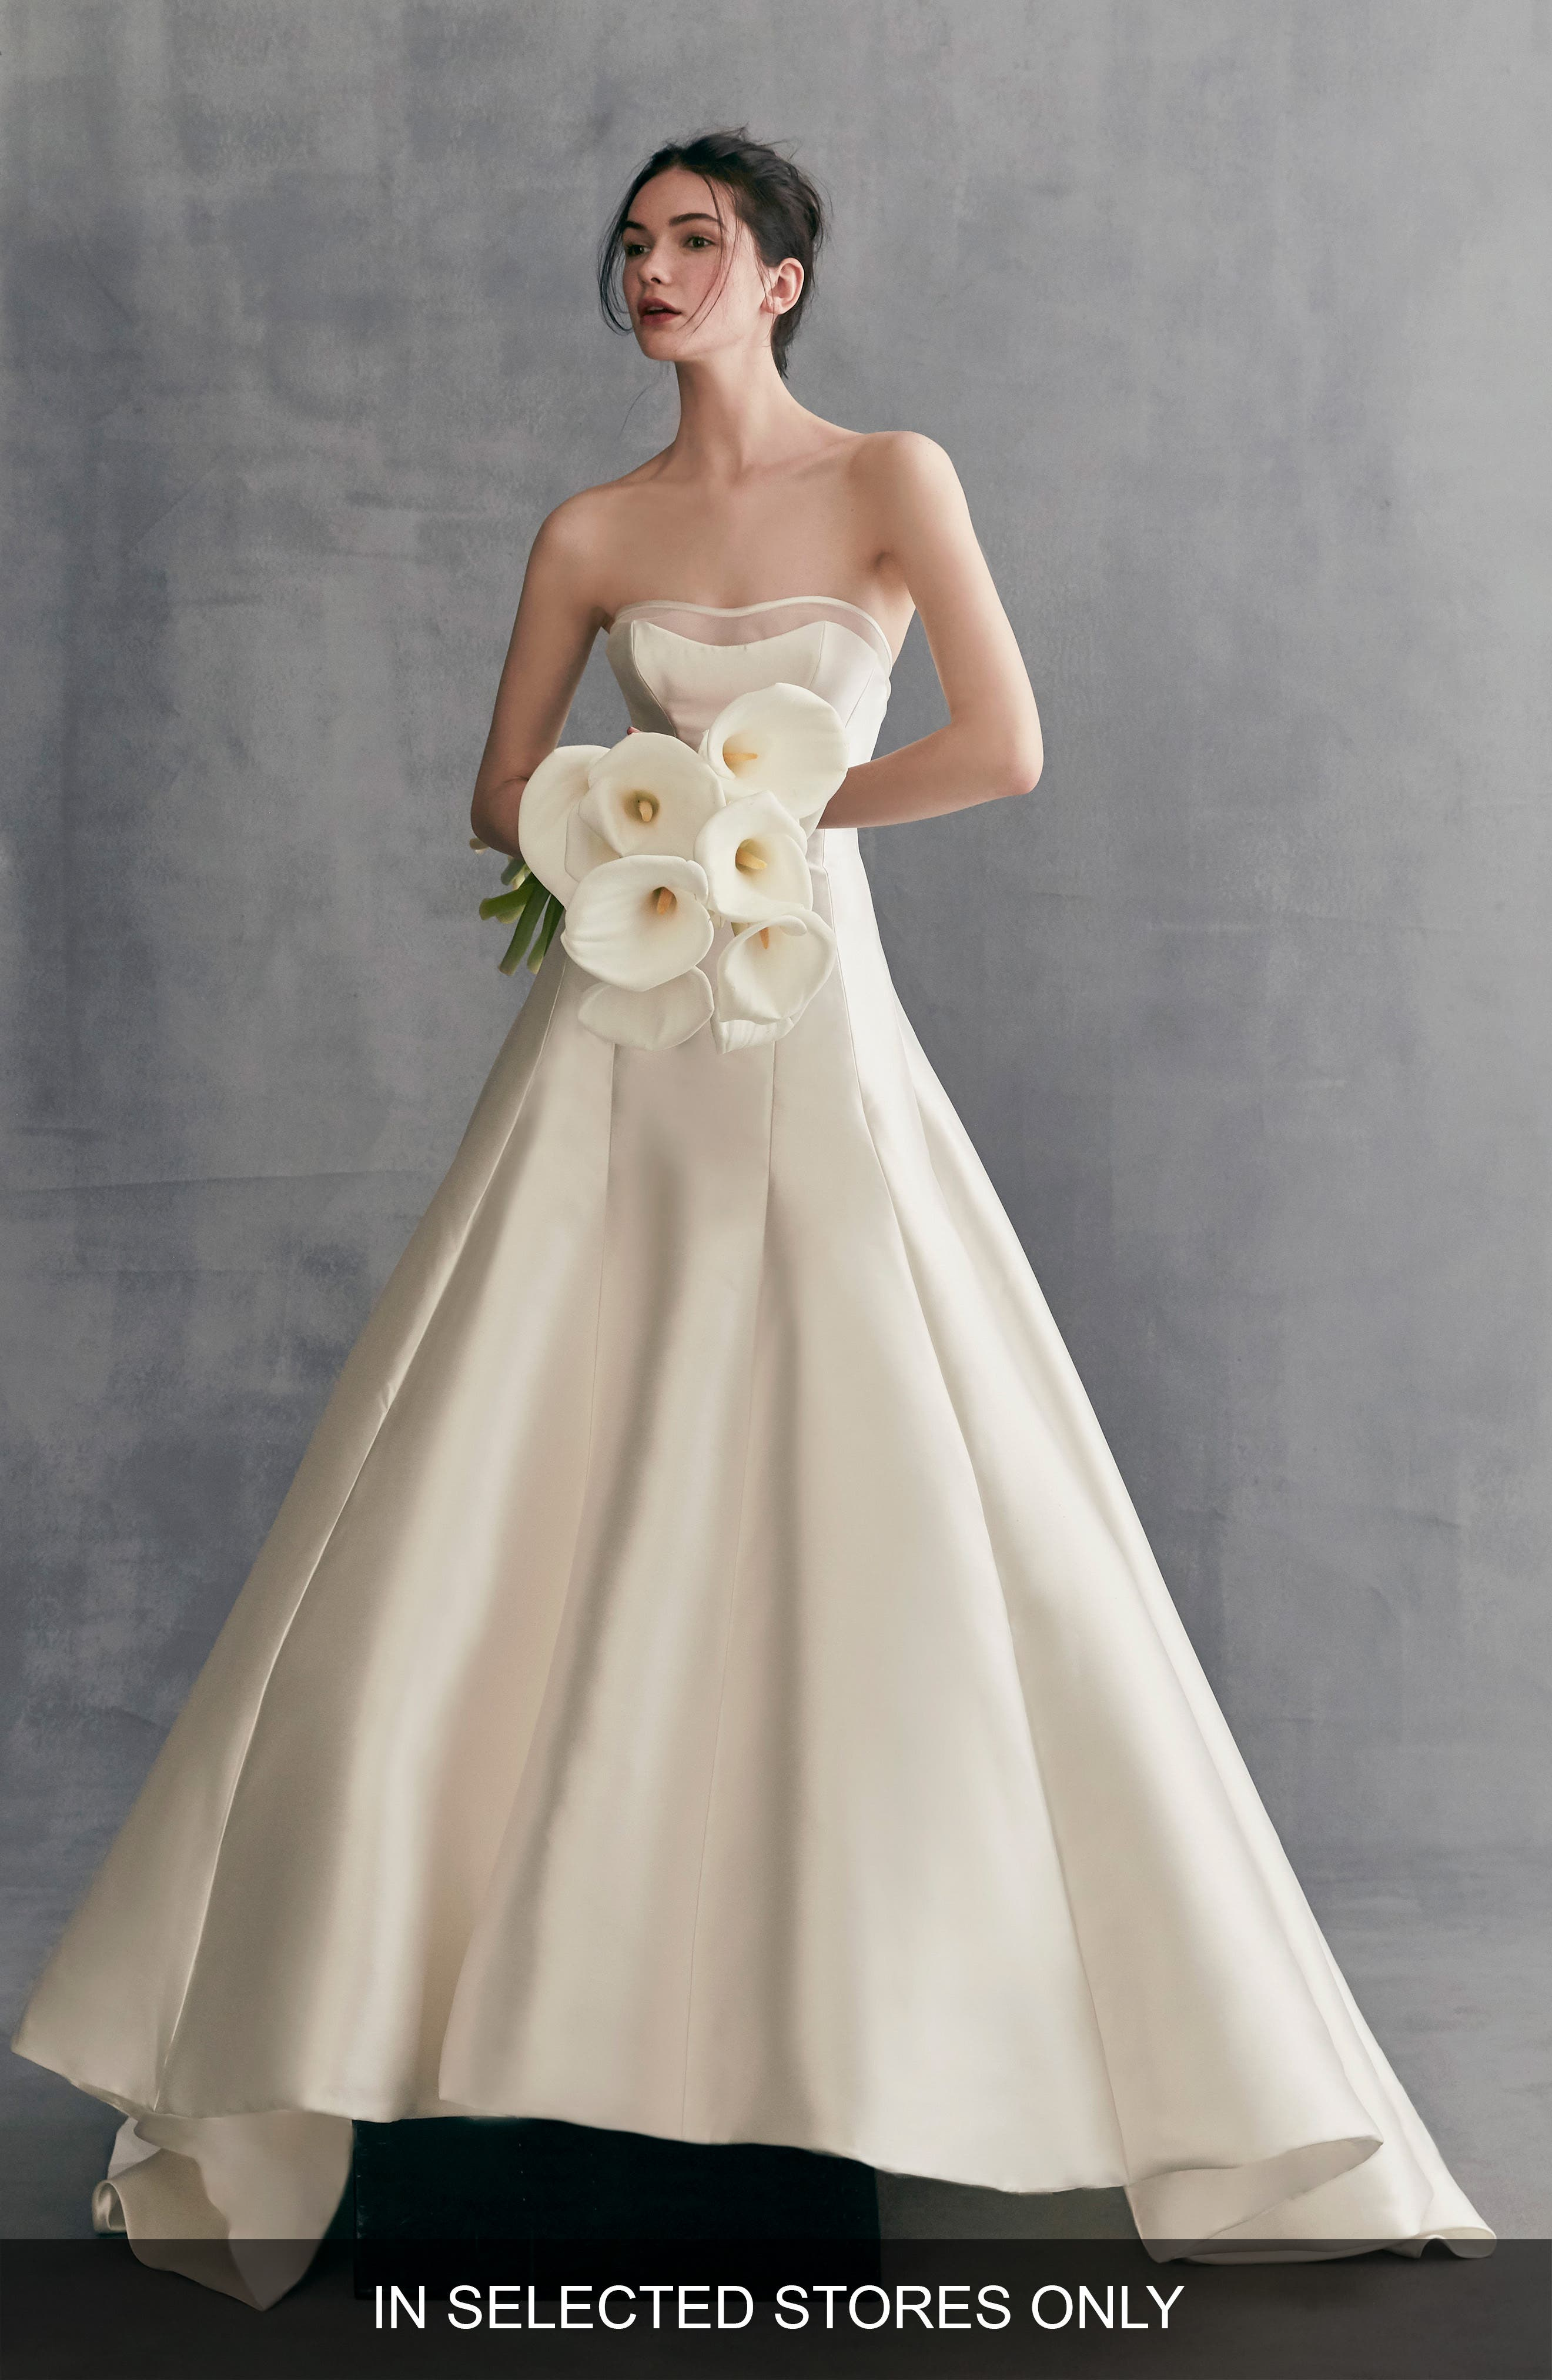 Alternate Image 1 Selected - Ines by Ines Di Santo Lavender Strapless Mikado A-Line Gown